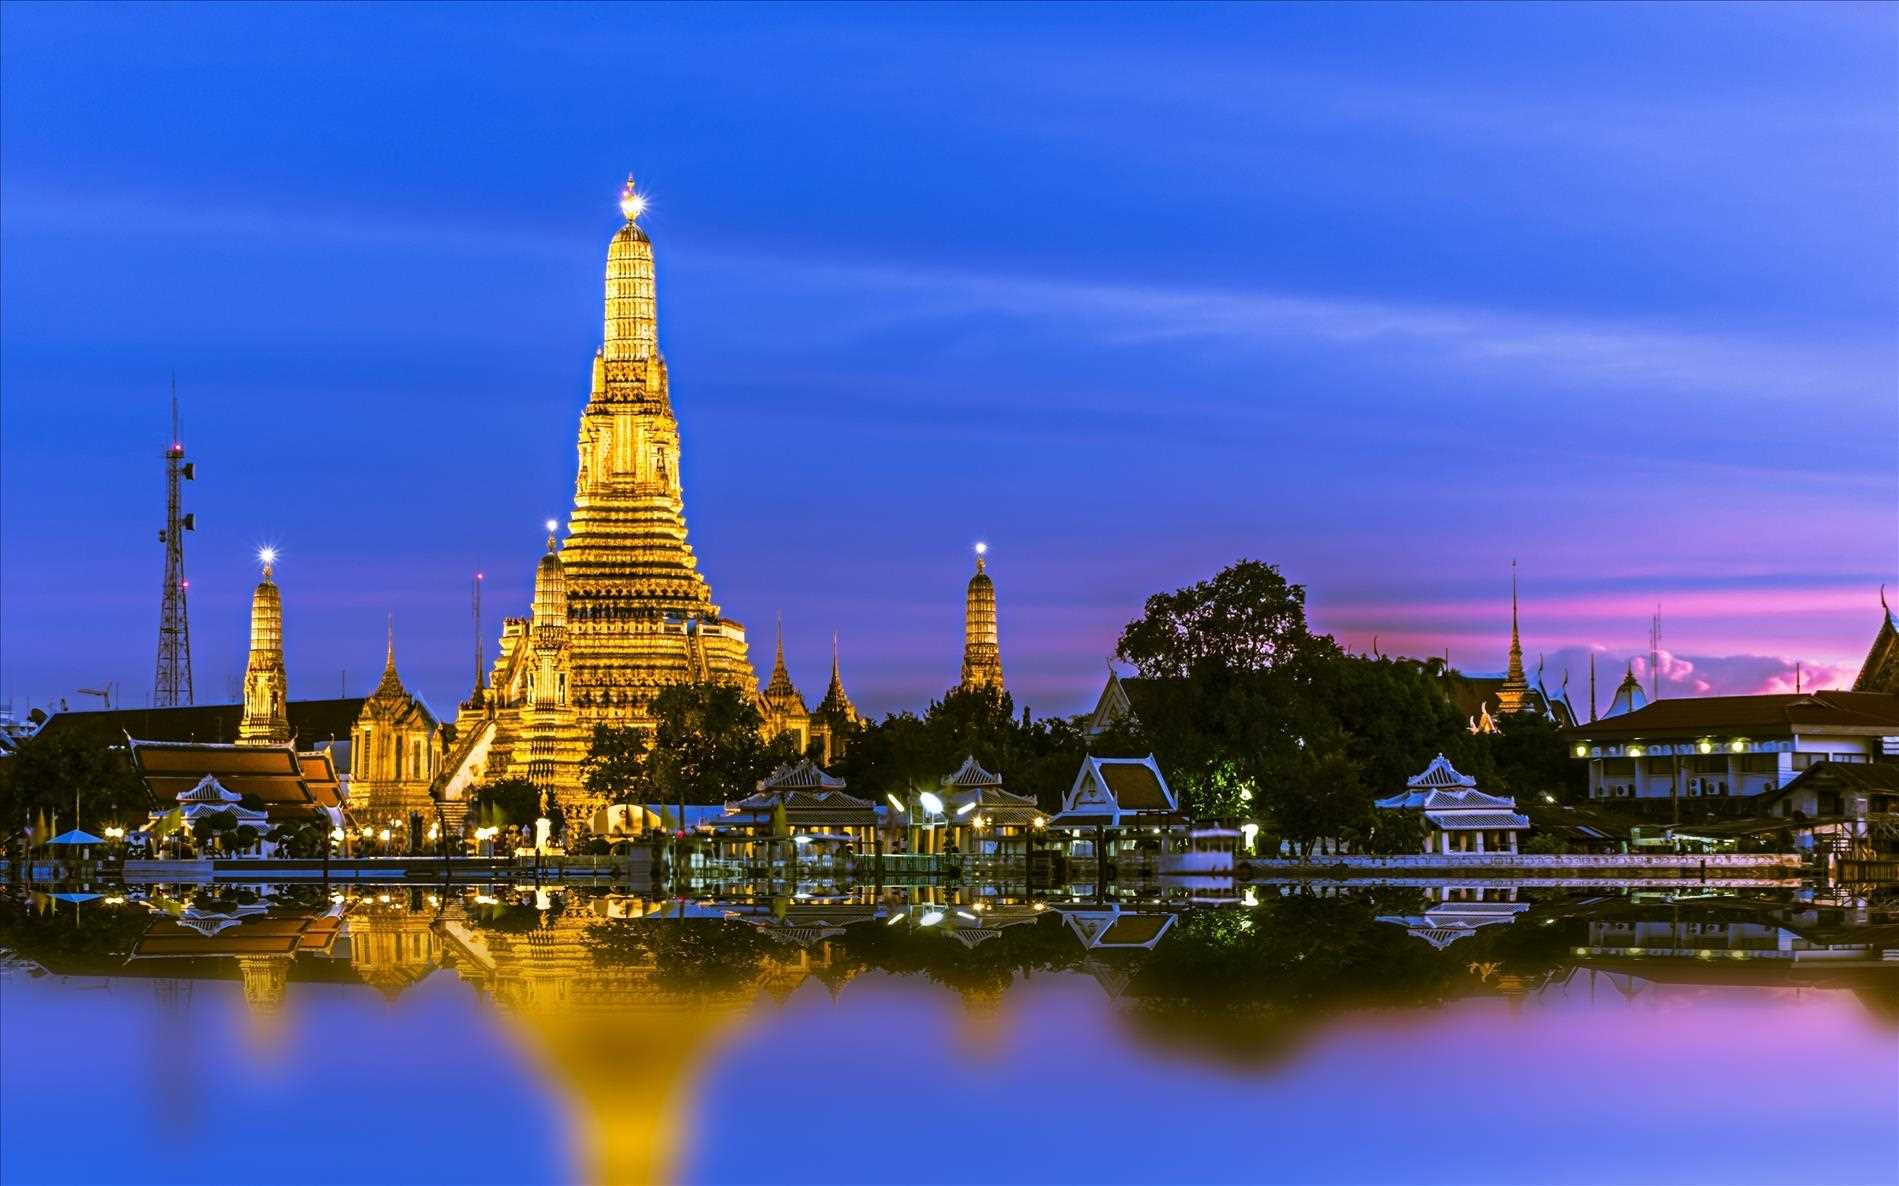 destinations-packages-thailand-from-india-archives-smart-holiday-shop-thailand-Bangkok-Thailand-Honeymoon-Packages-honeymoon-packages